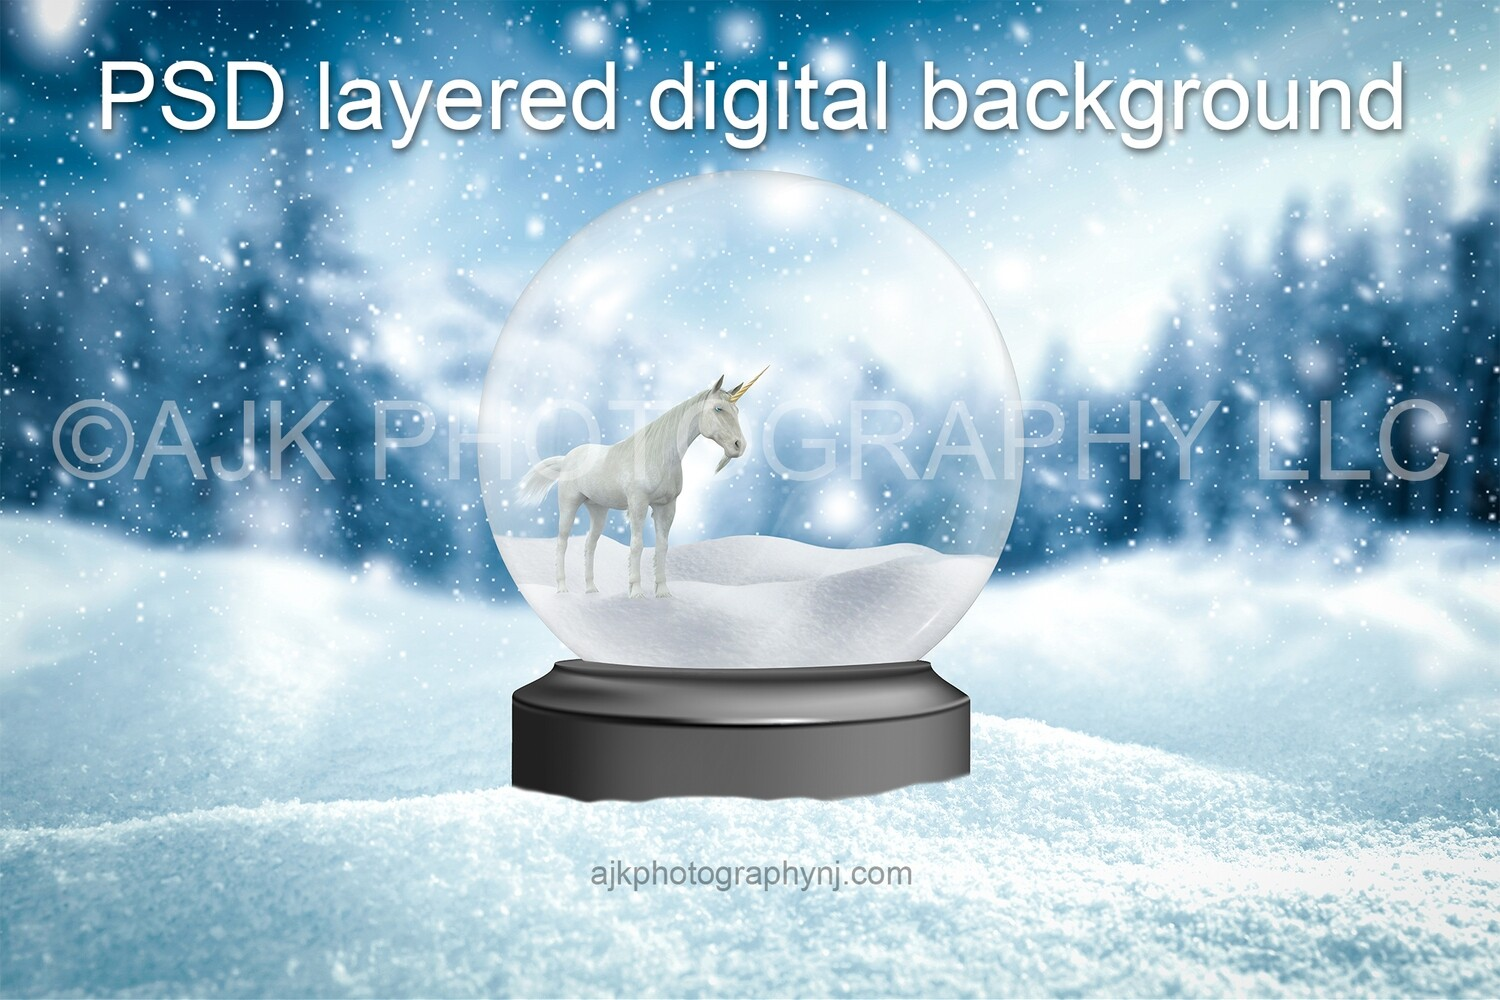 Unicorn standing in a field of snow while it's snowing digital background